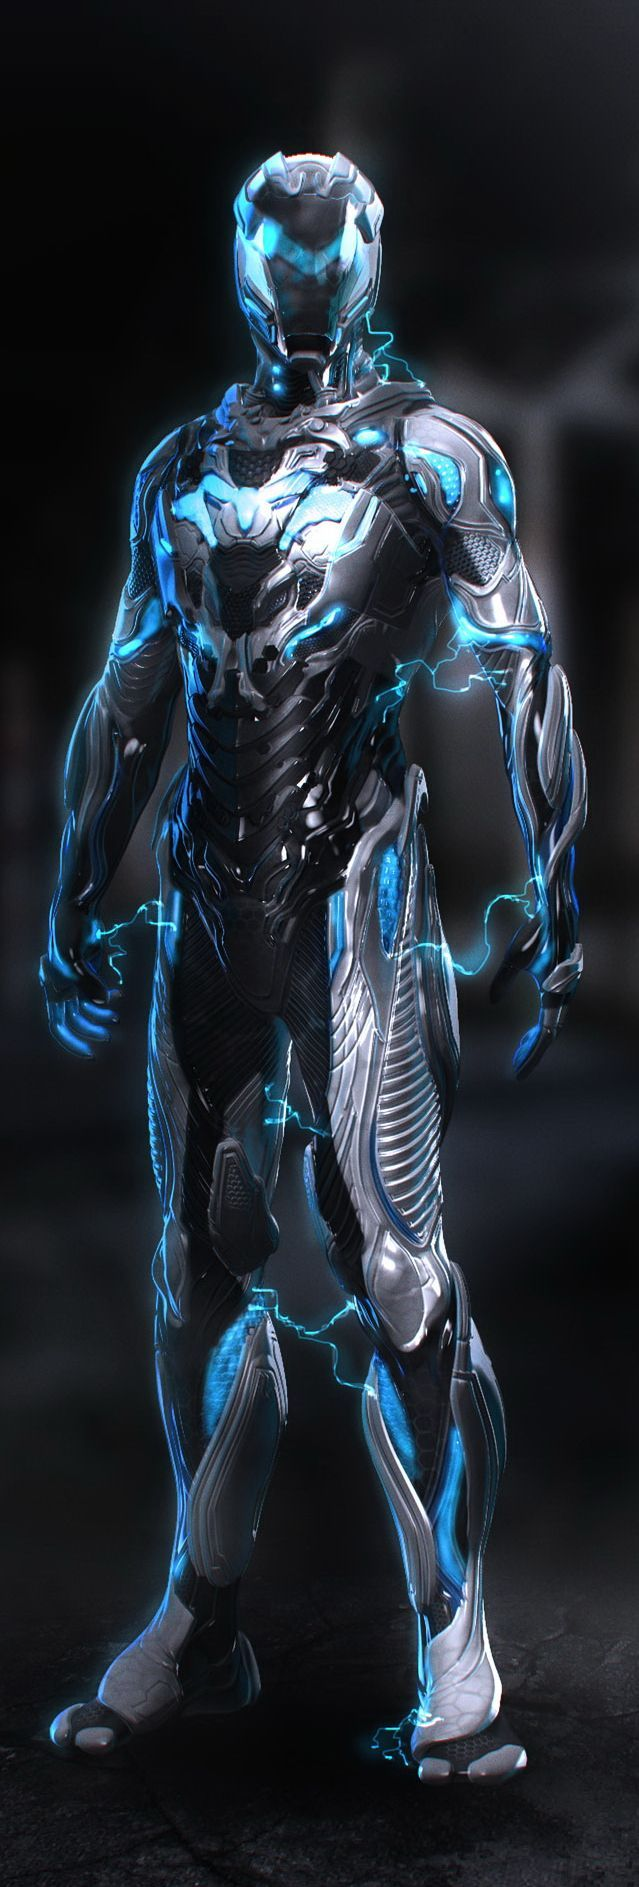 Max Steel concept art by Justin Goby Fields